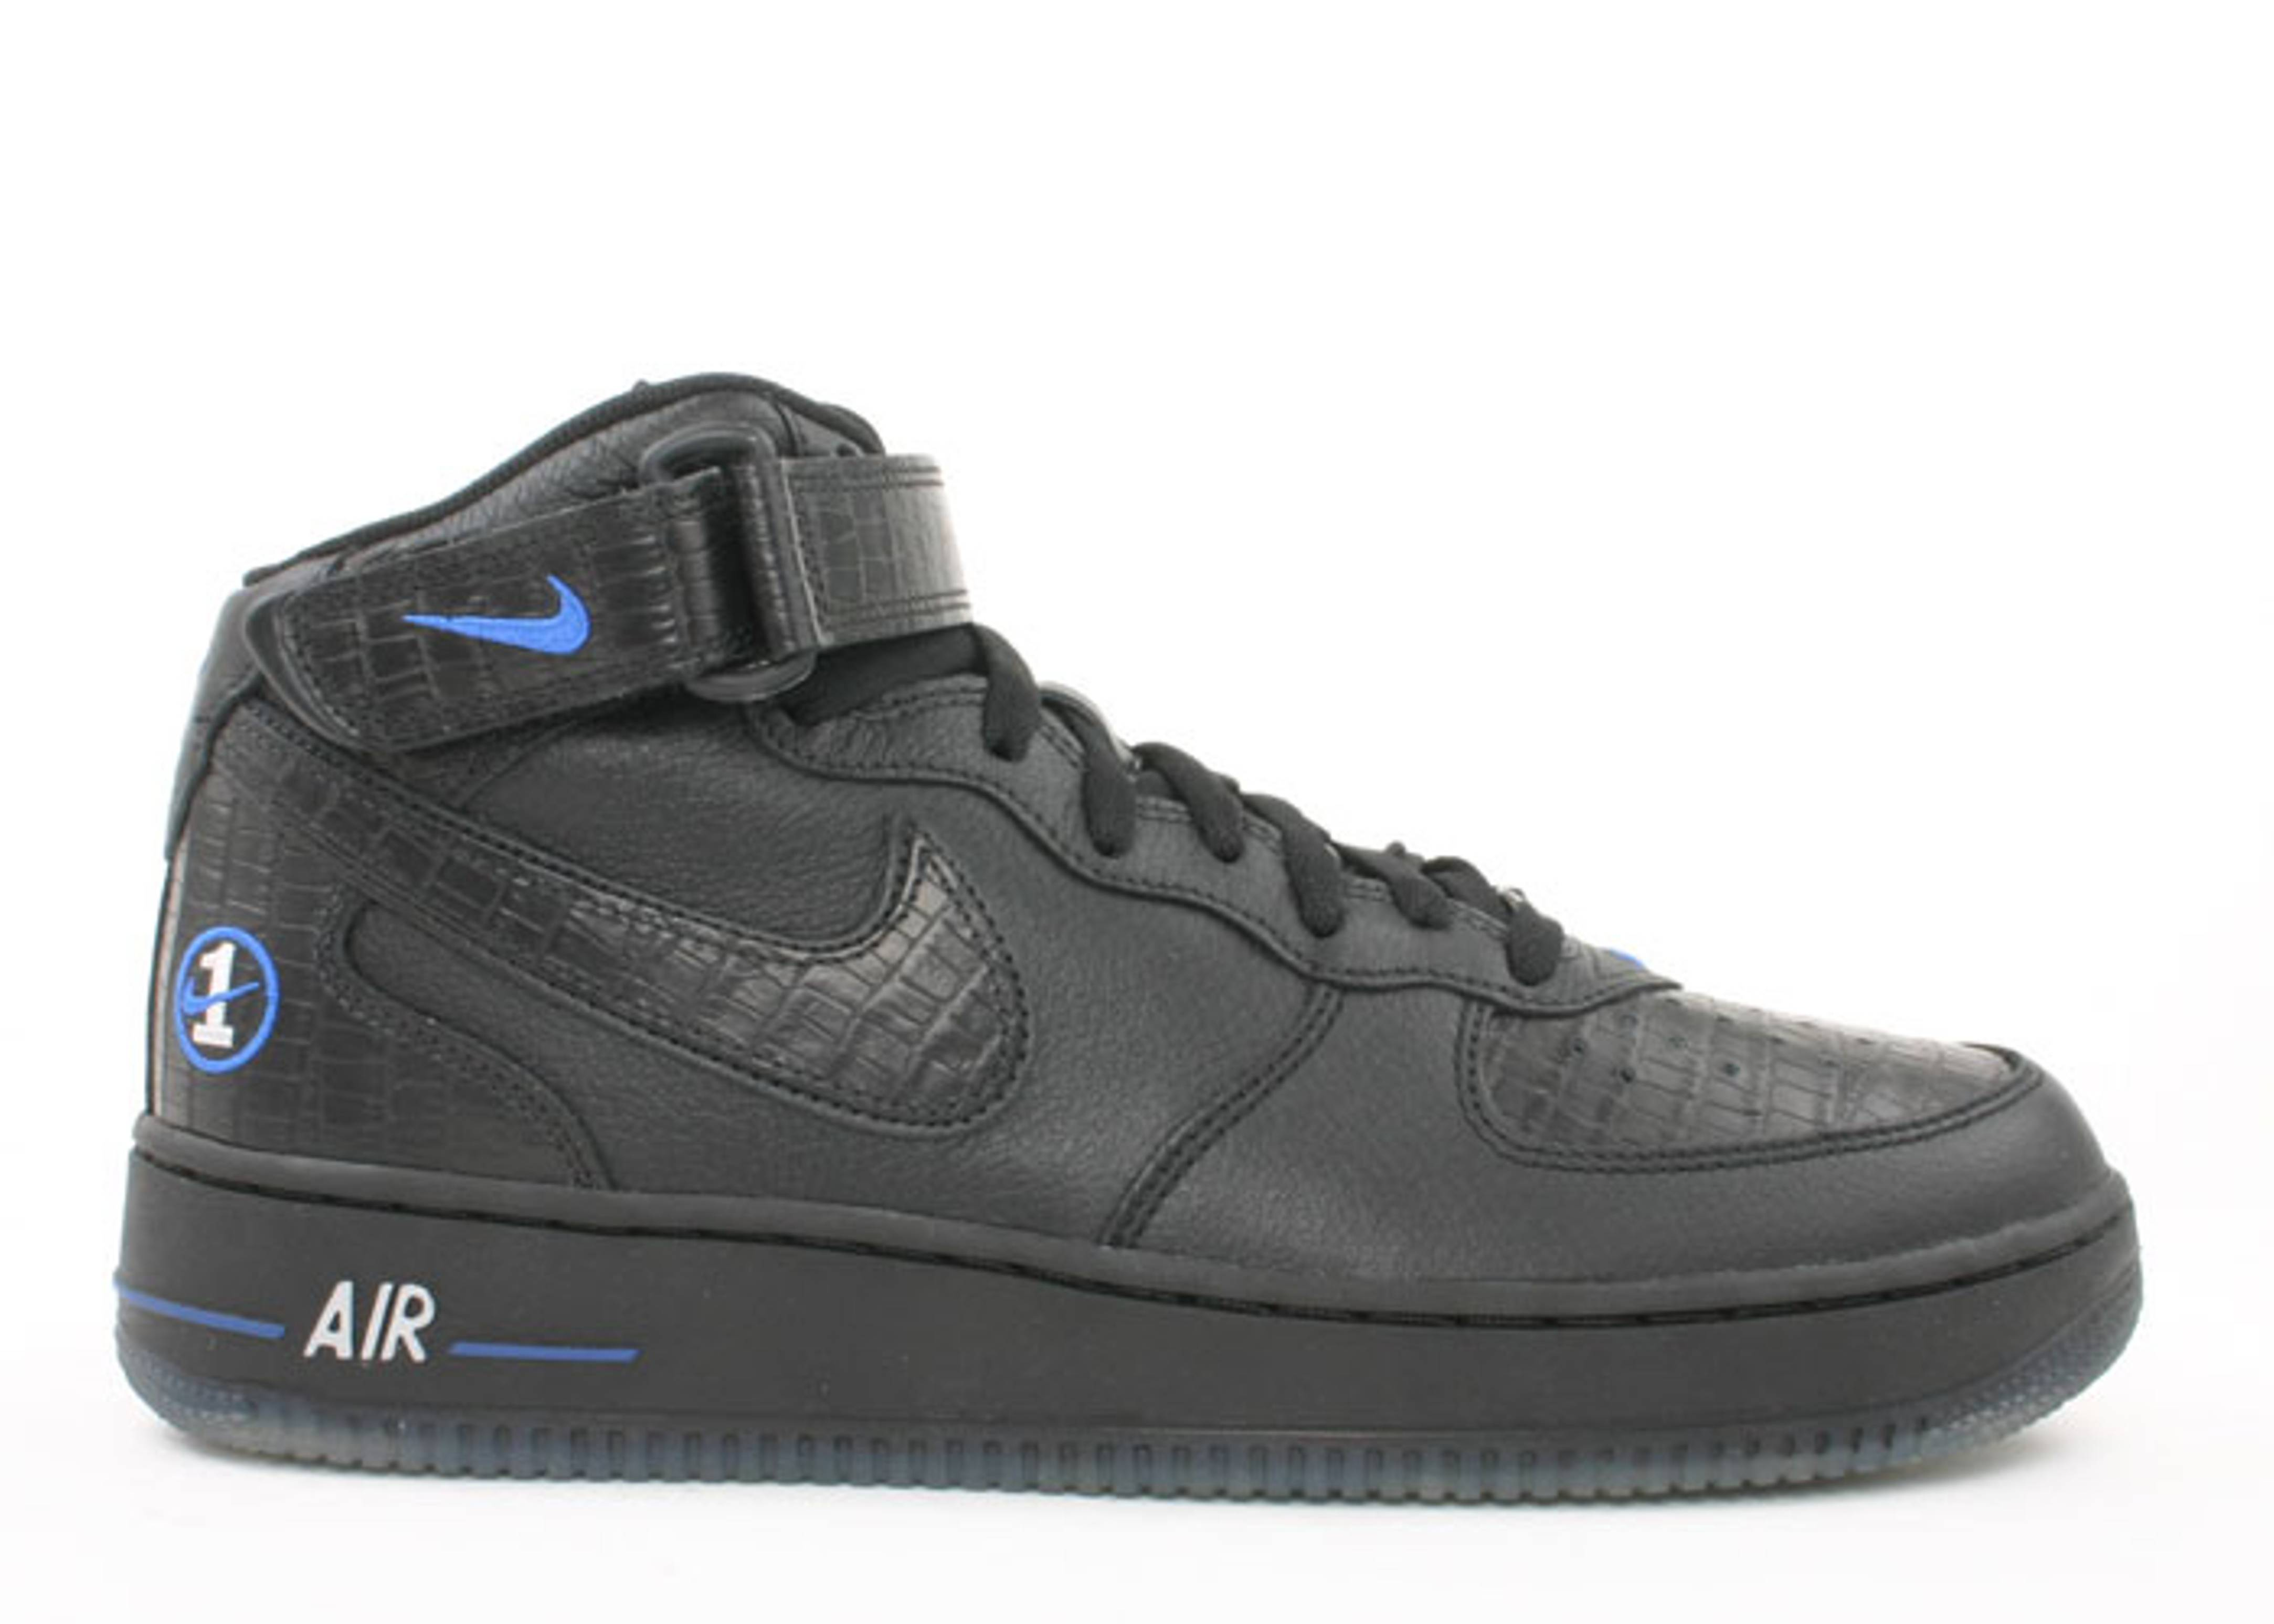 Air Force 1 Mid Nike 306340 002 Black Black Royal Blue